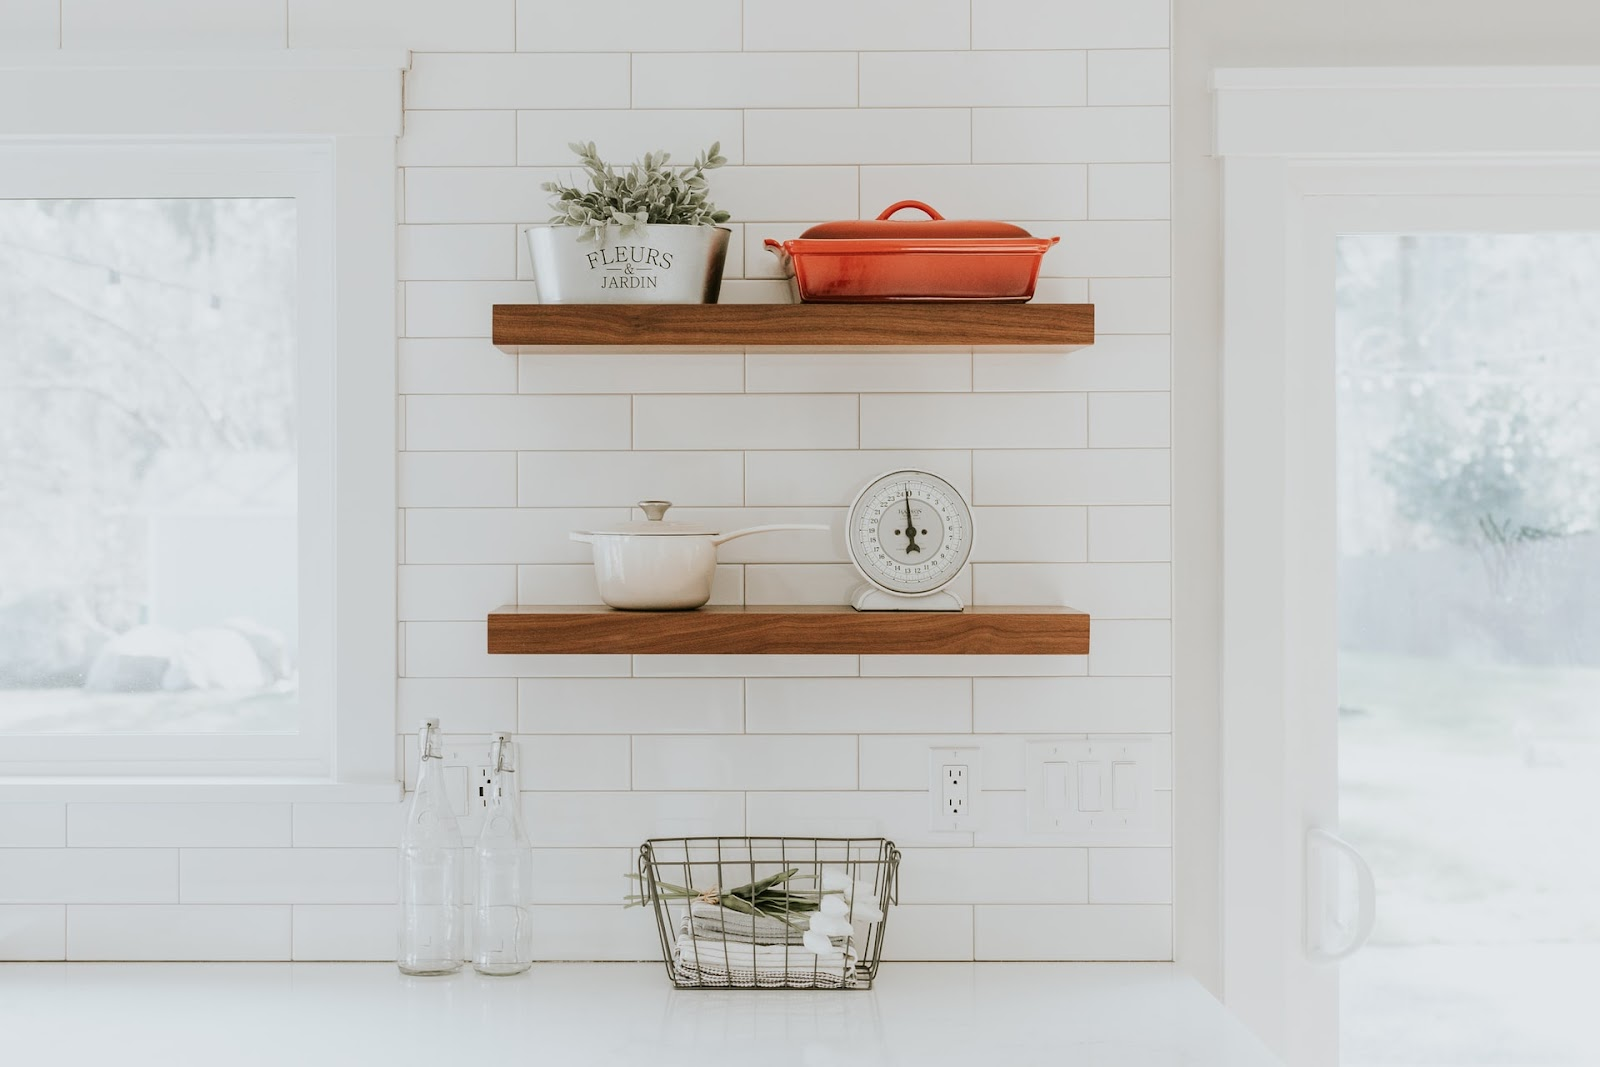 Statement flooring and tiles can have a huge impact on the overall vintage aesthetic of your kitchen; a plain white tiled kitchen with simple wooden  planks